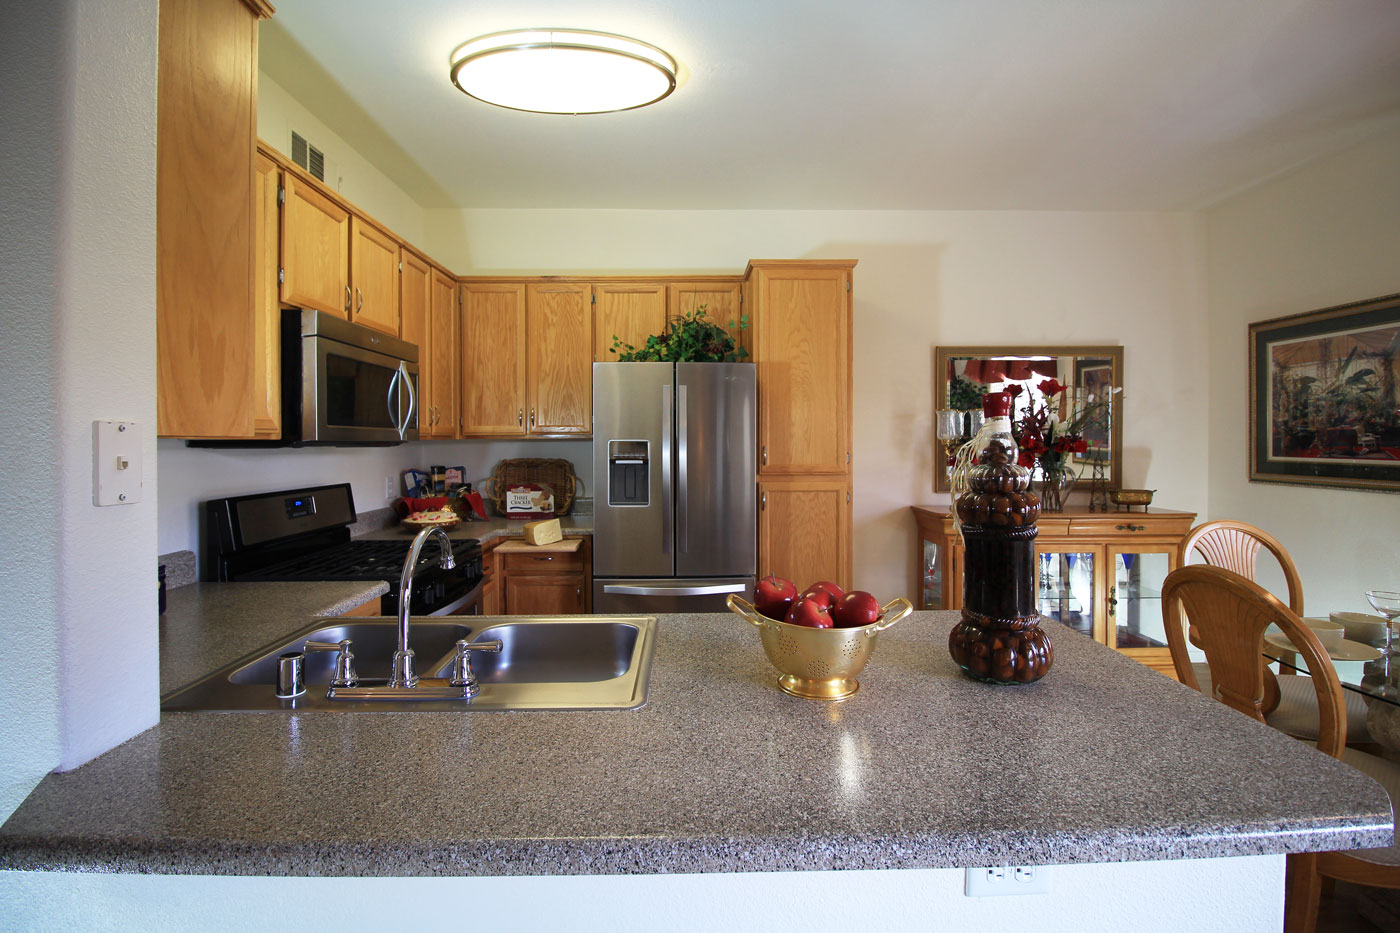 Overview of Kitchen at La Villa Estates with stainless steel appliances.